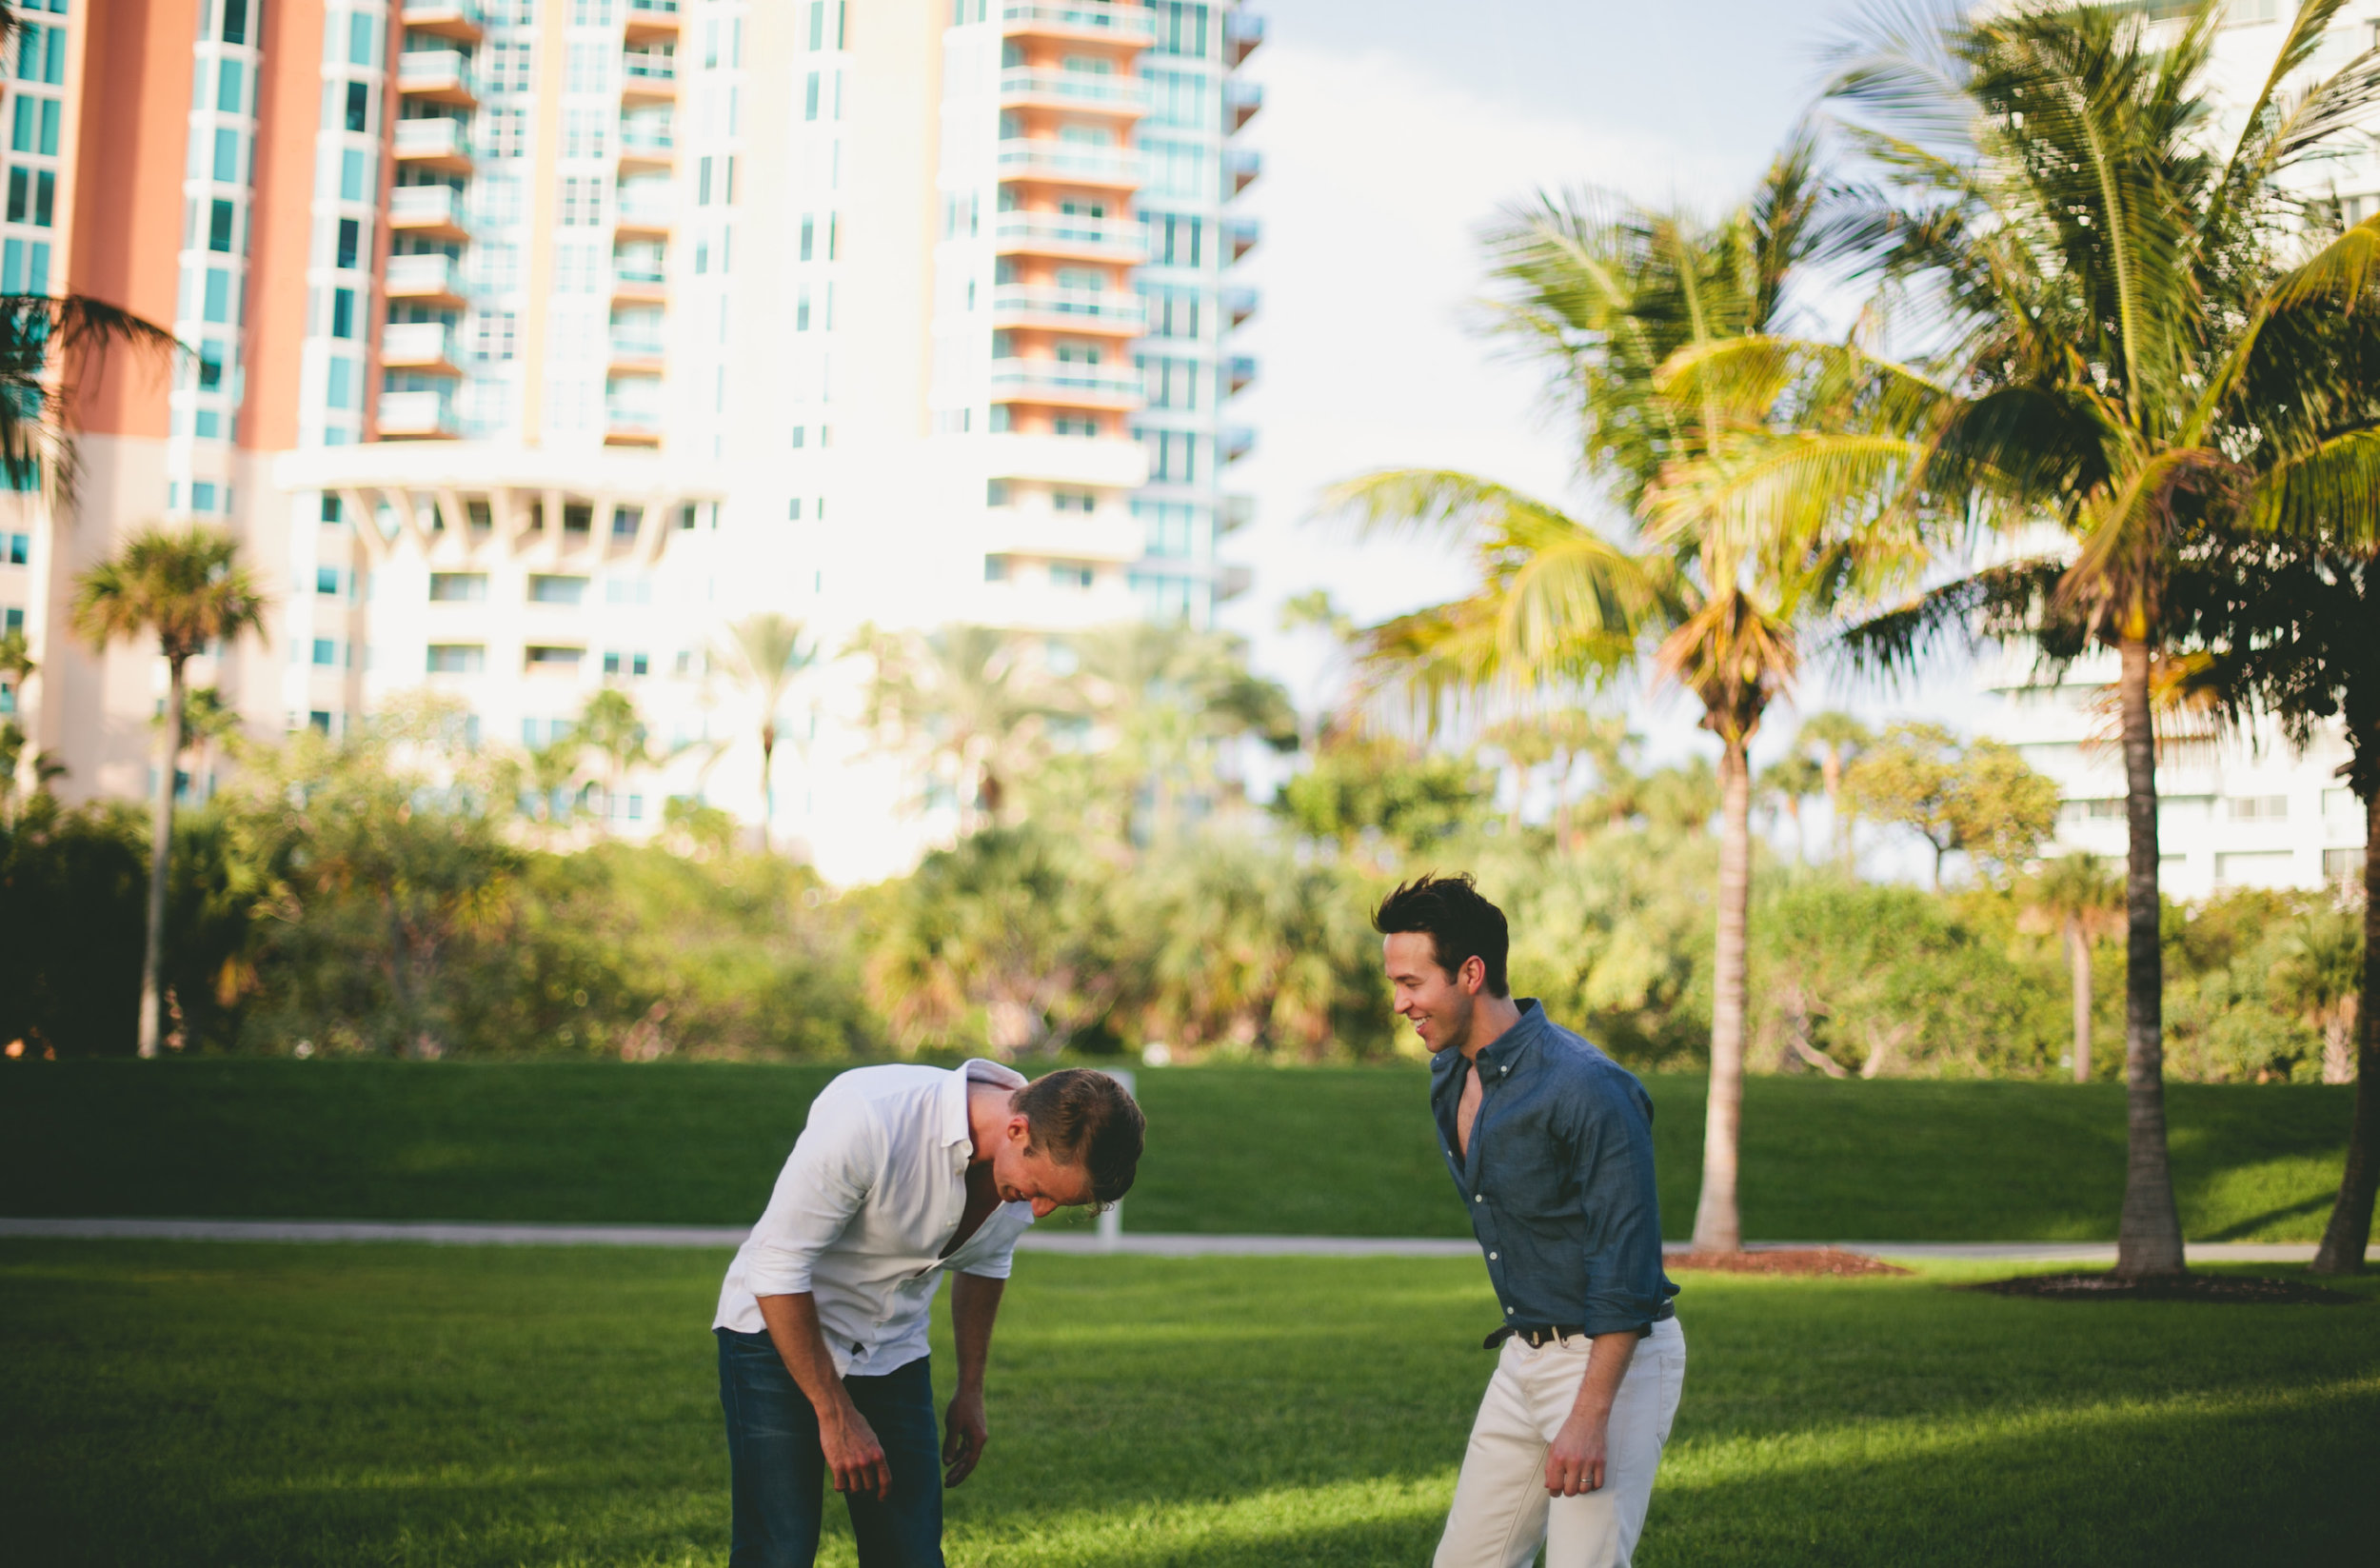 South Beach Miami Engagement photos at South Pointe Park 23.jpg